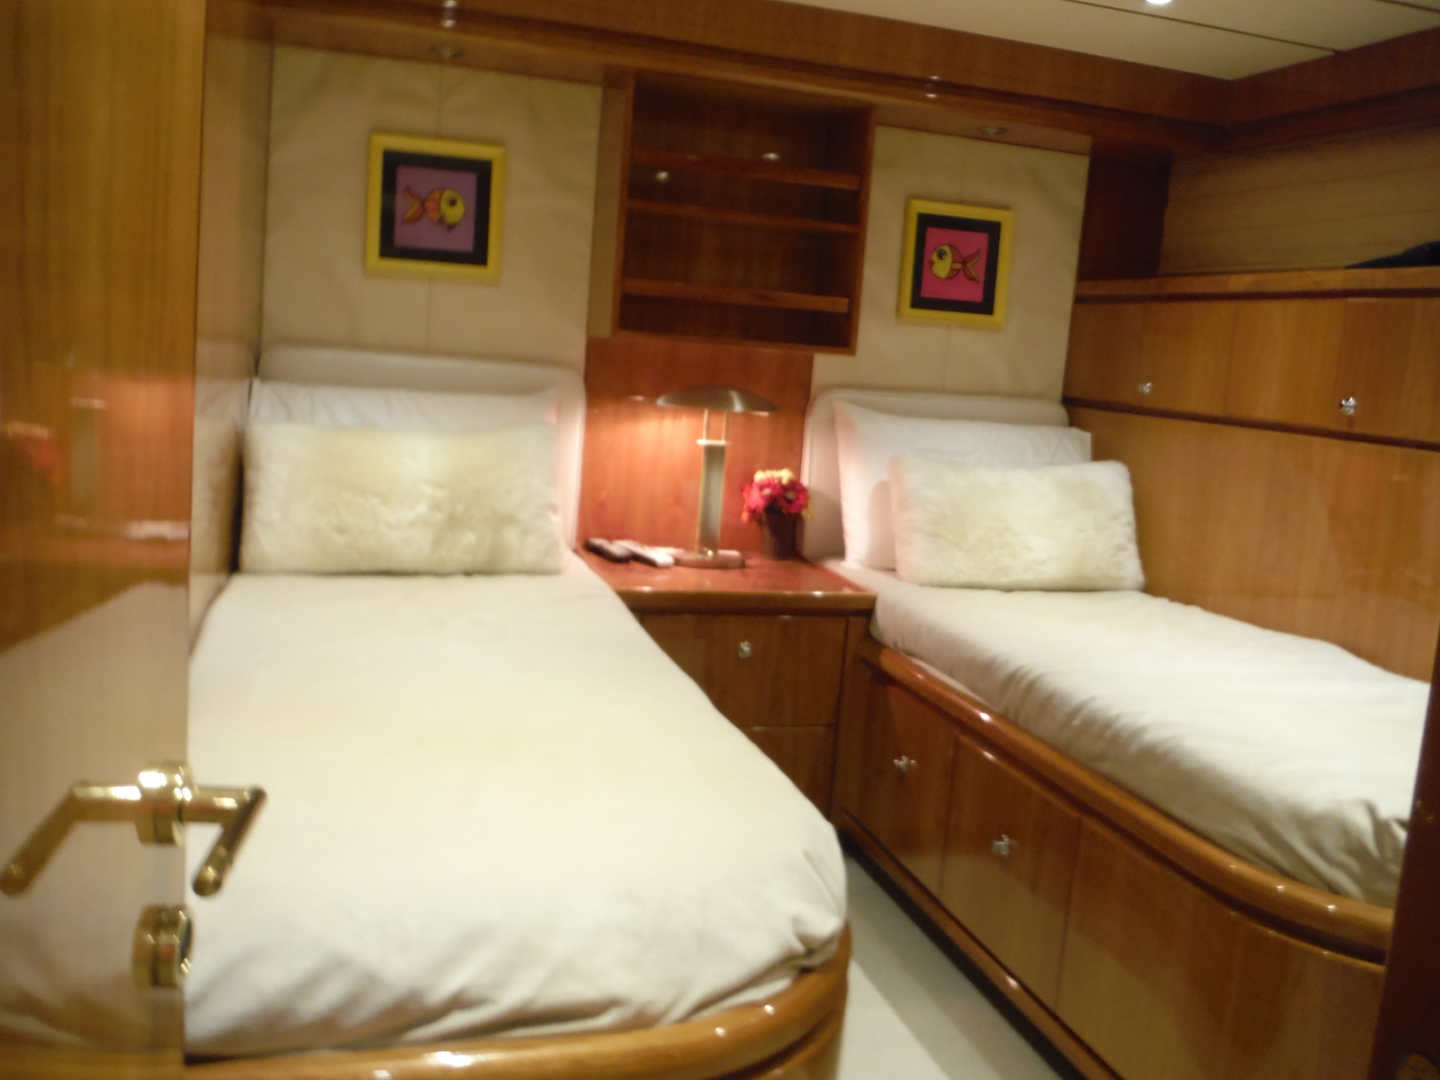 Hargrave-Flybridge Motor Yacht 2001-GRACE Fort Lauderdale-Florida-United States-Starboard Side Twin Cabin-1091959 | Thumbnail